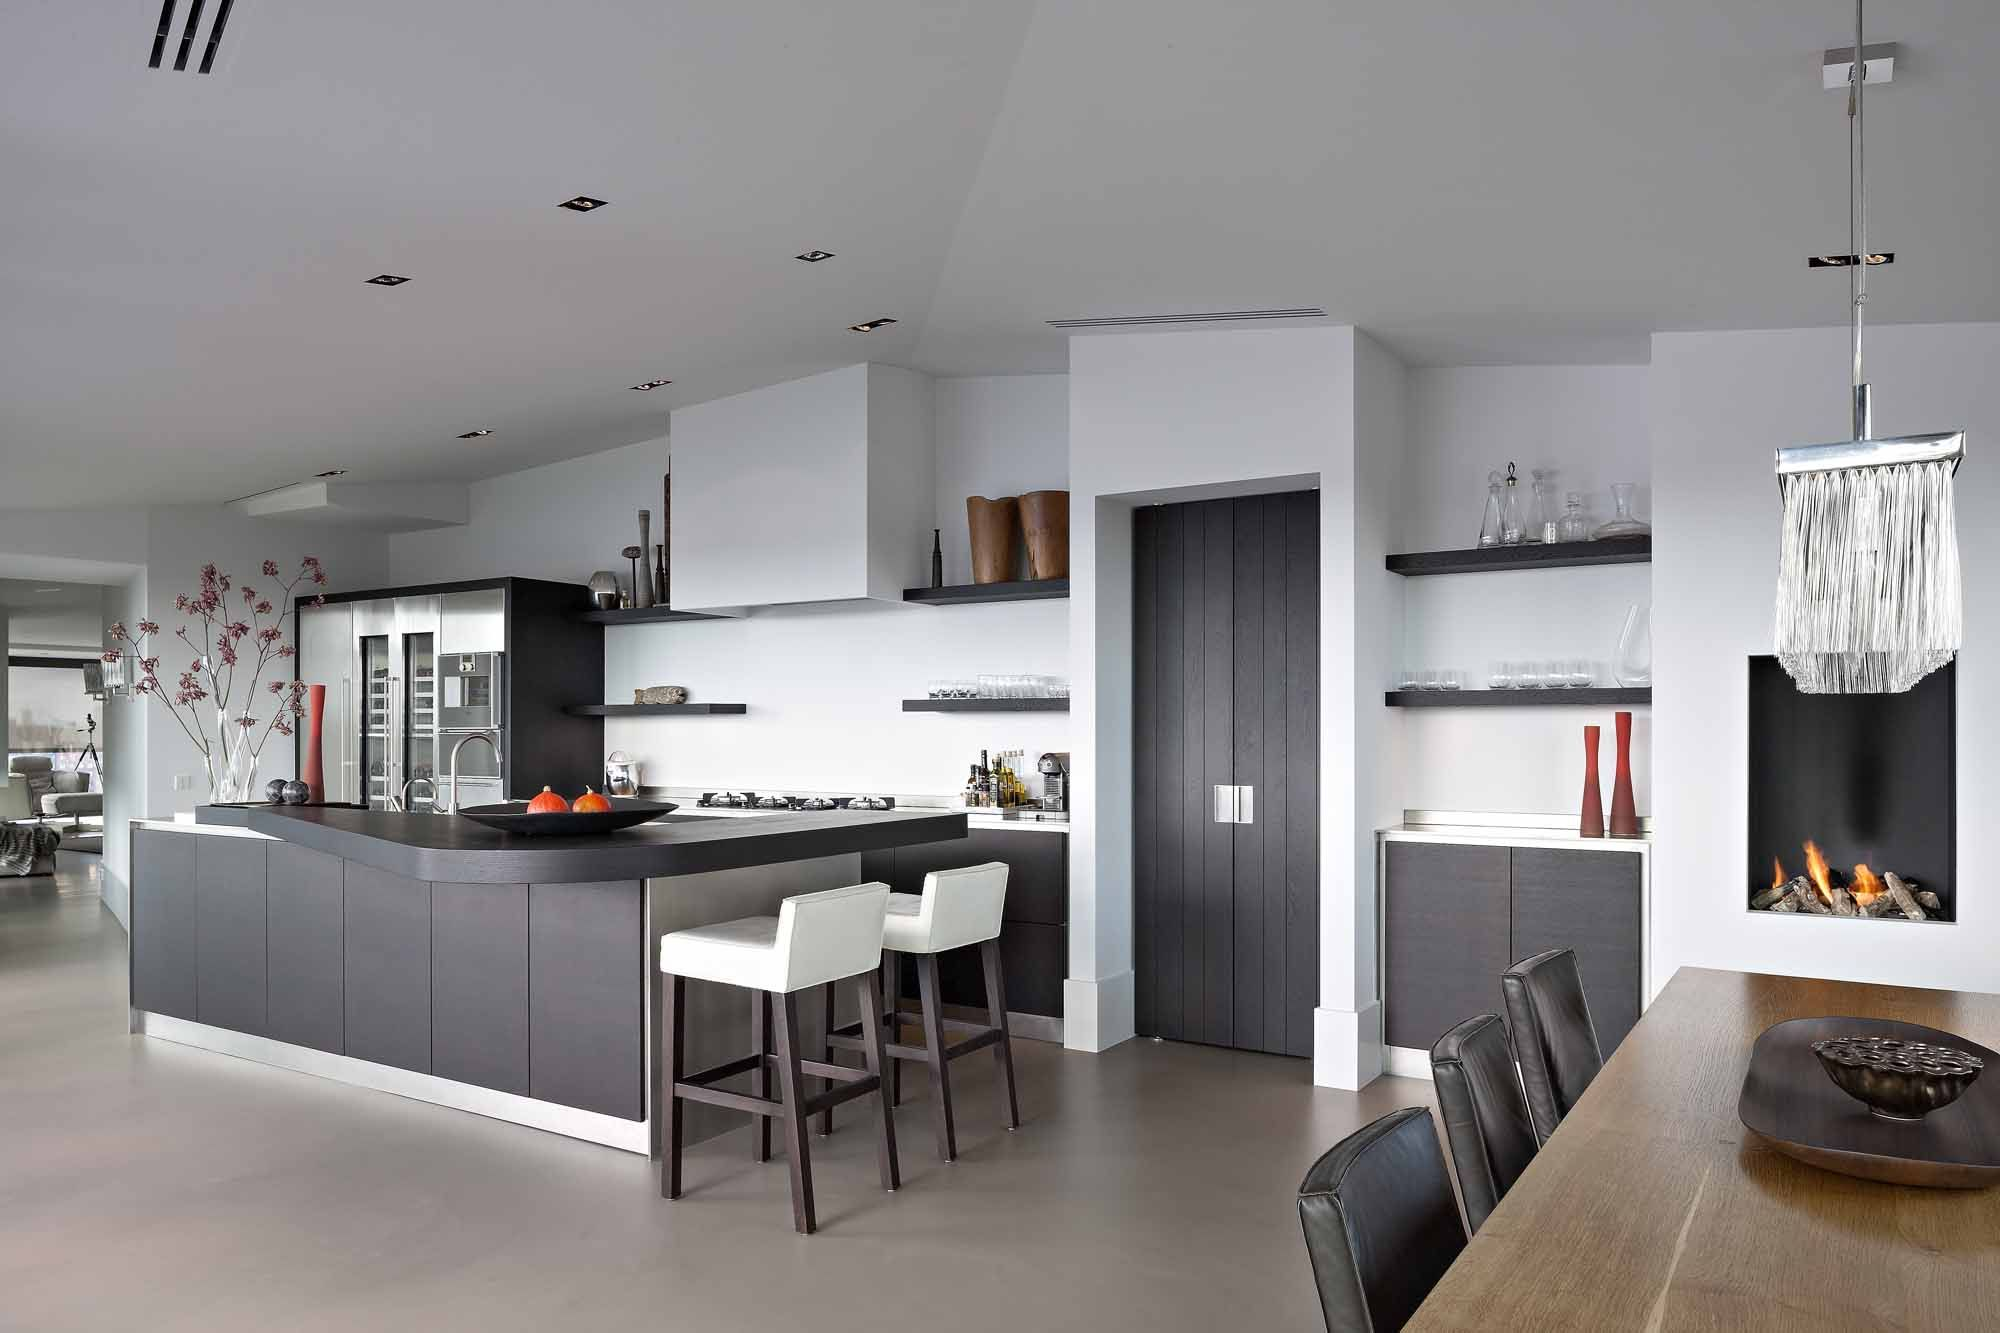 The living kitchen moderne luxe keuken in obly keukens